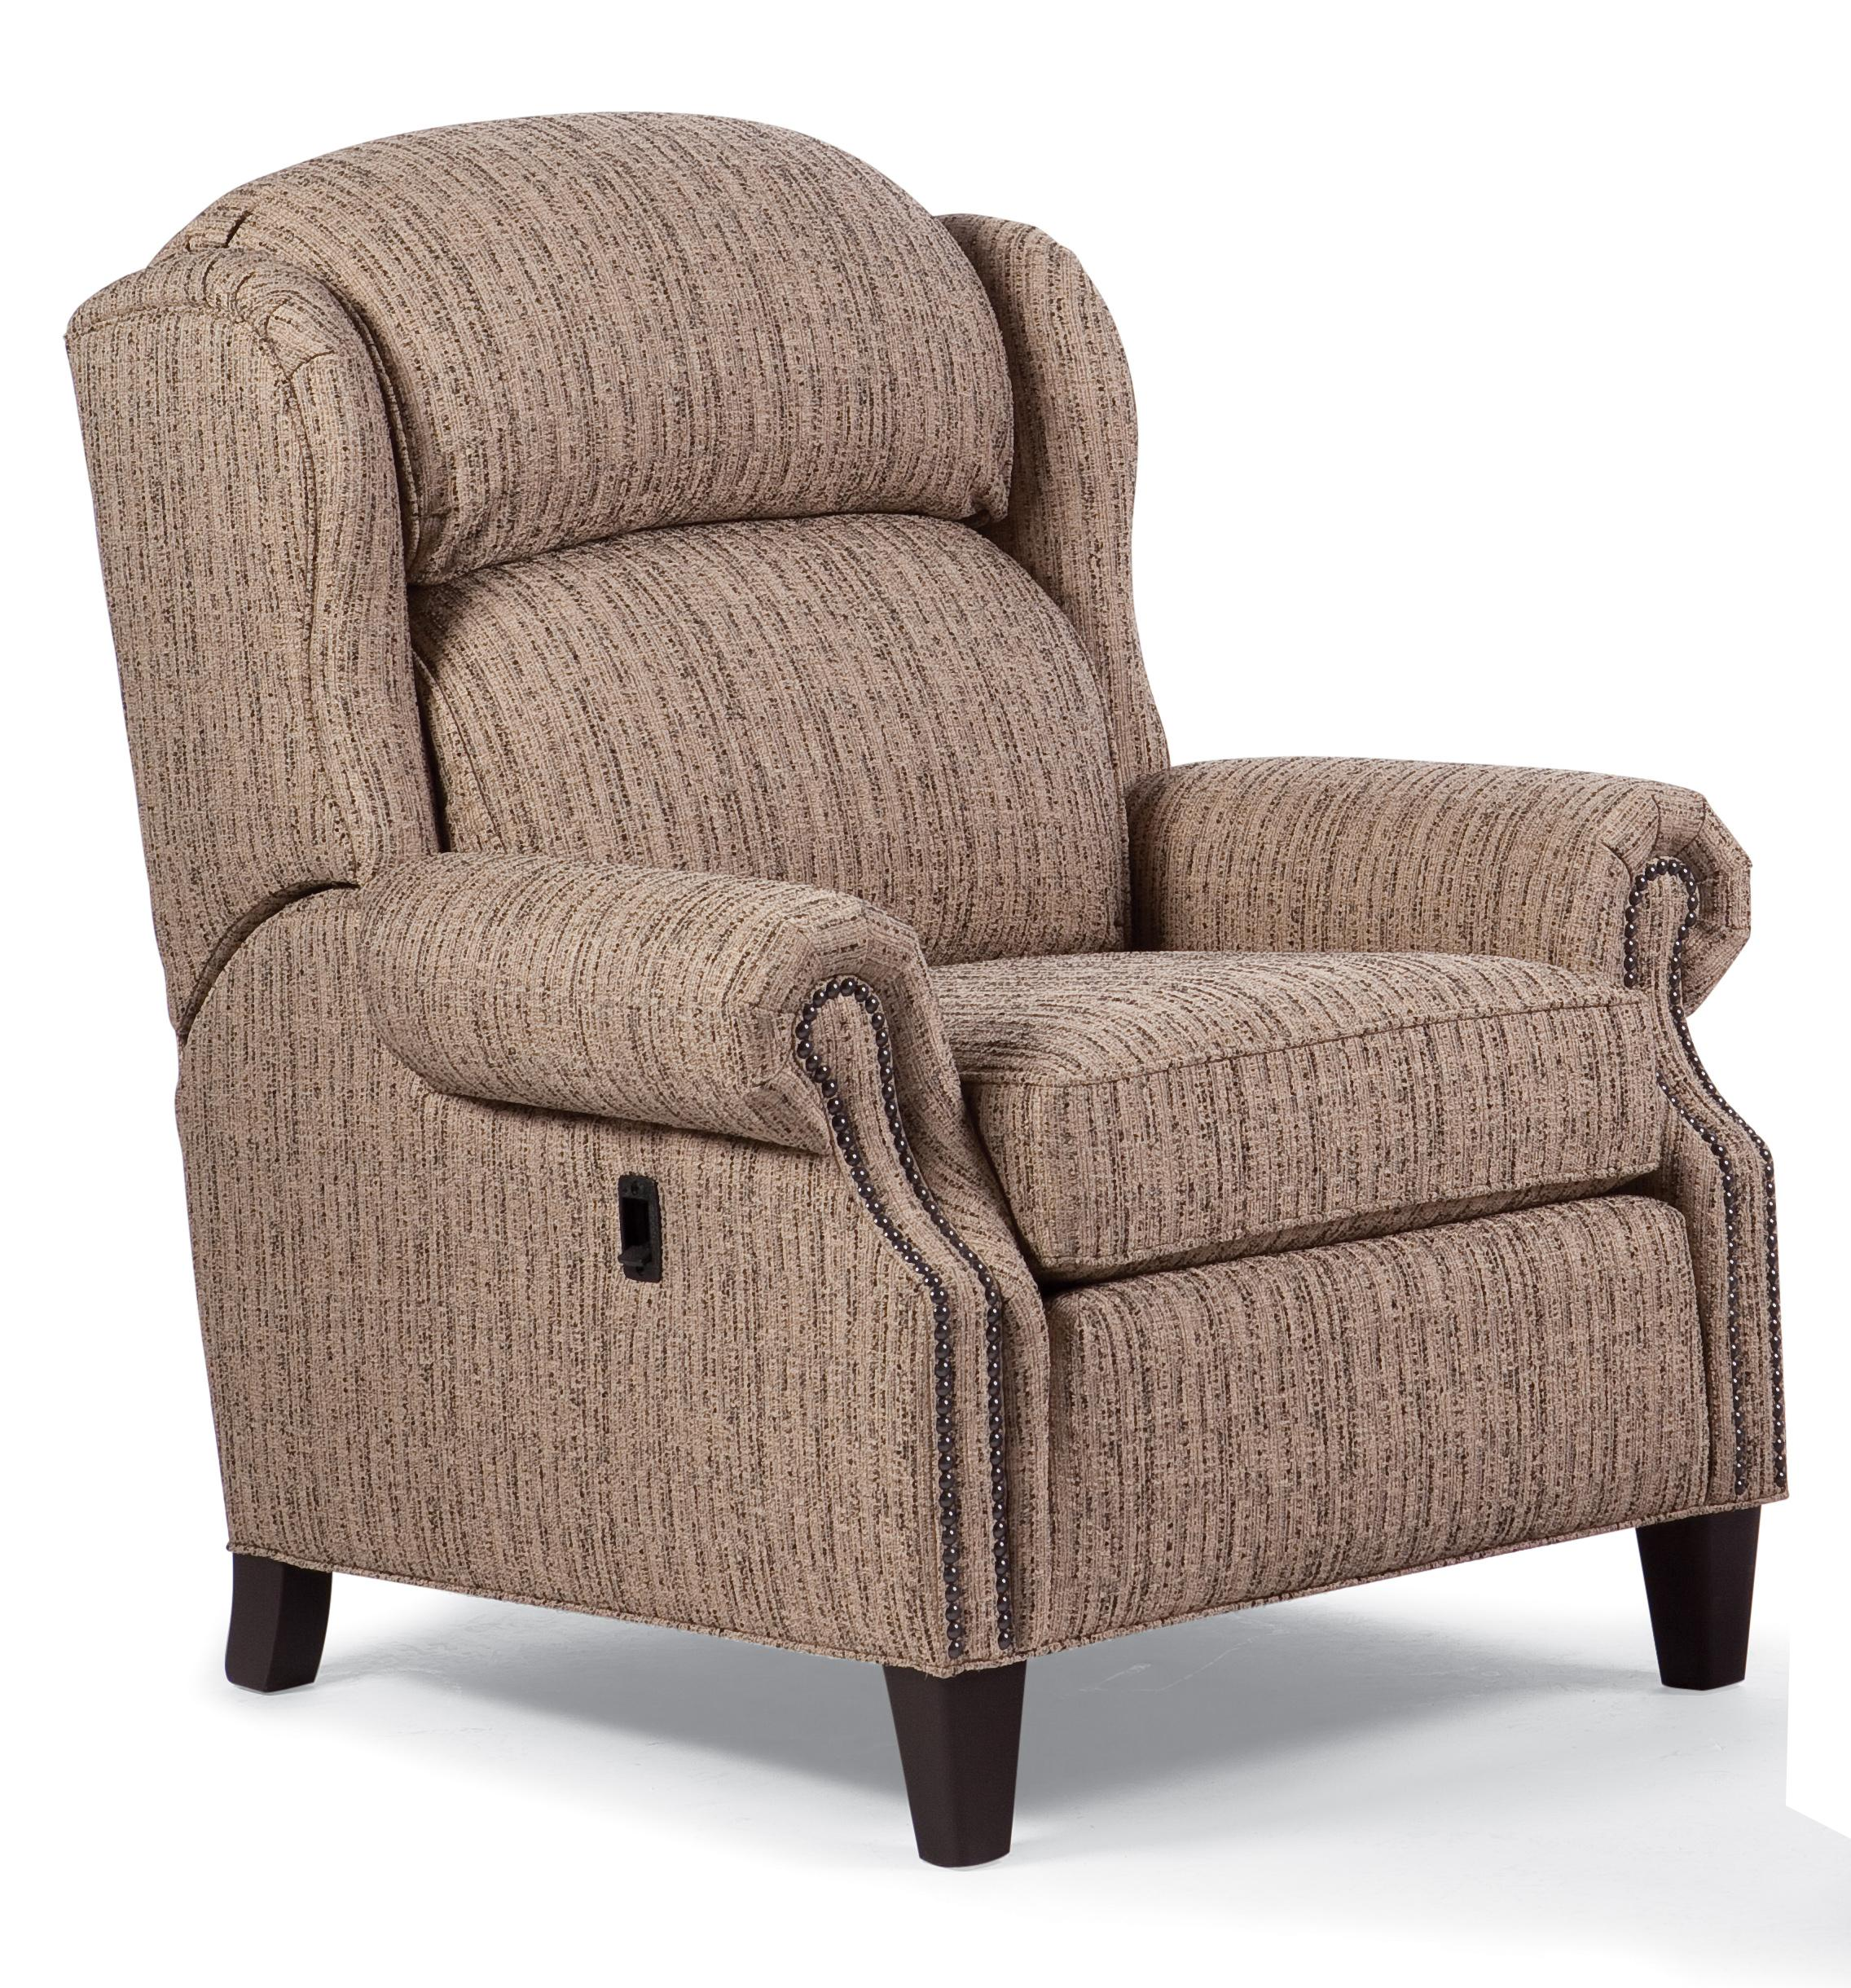 Tilt Back Chair Recliners Traditional Tilt Back Chair With Nailhead Trim